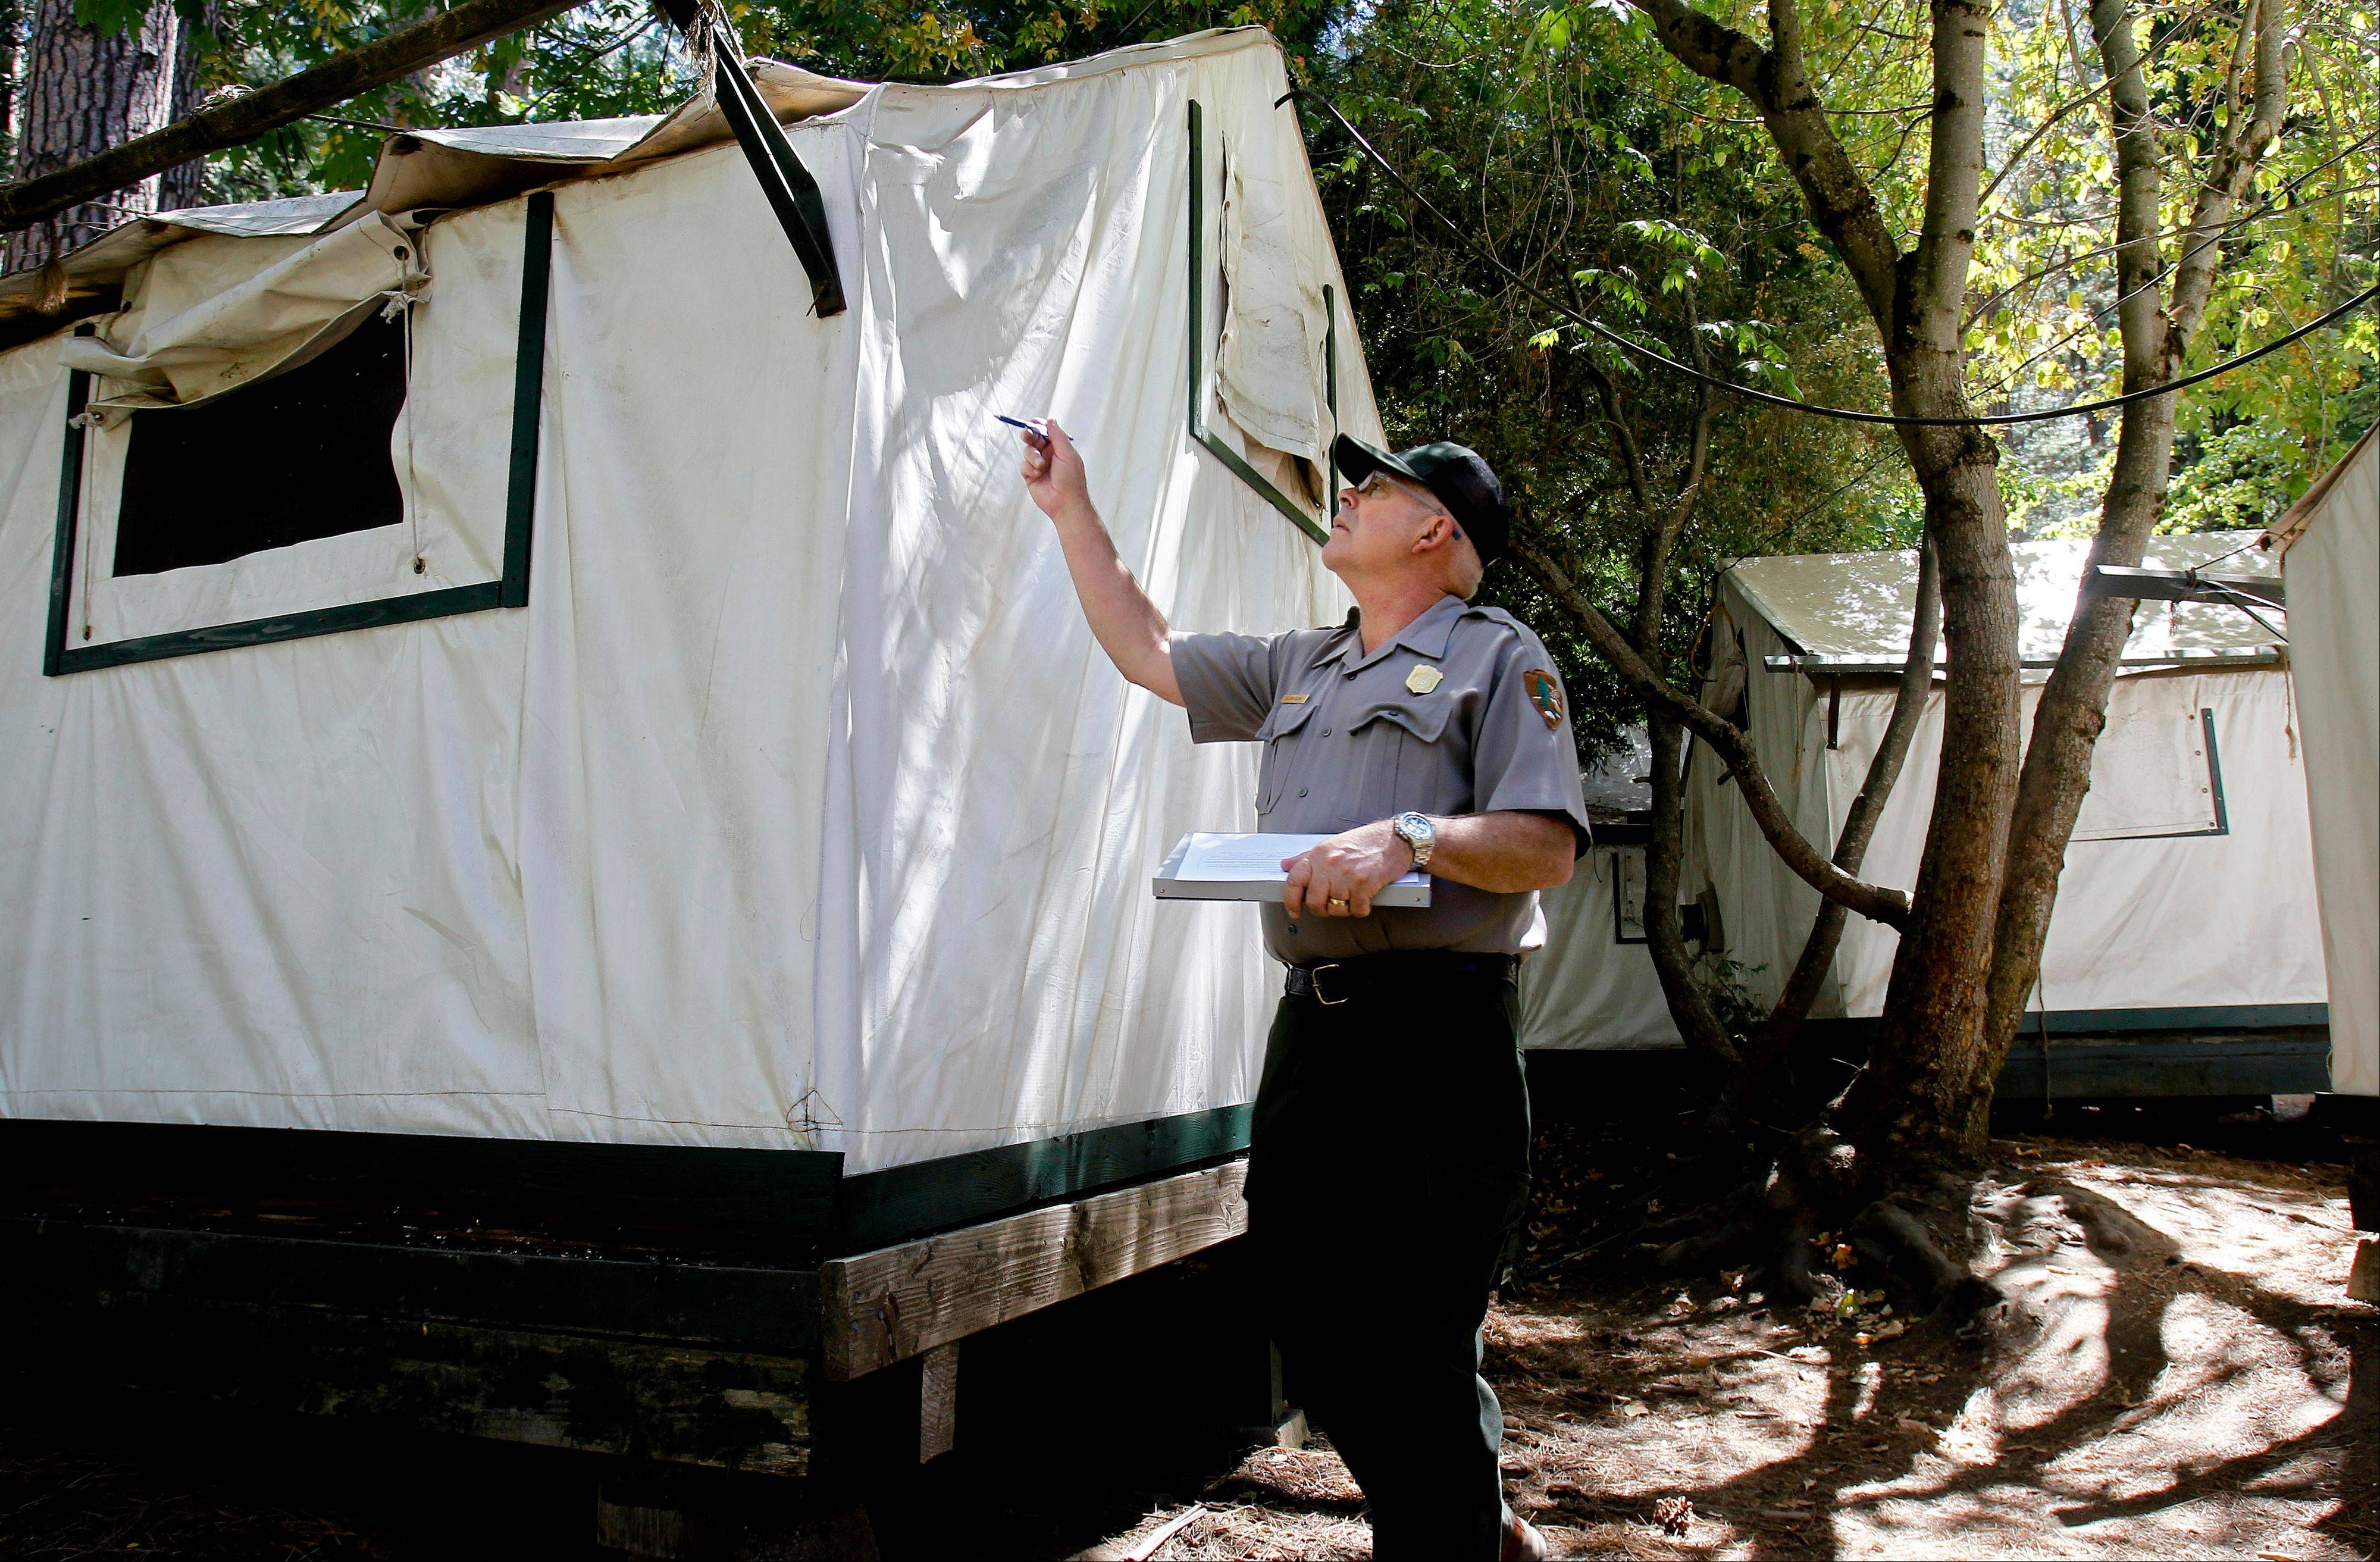 Glenn Dean, a National Parks Occupational Safety and Health Specialist, inspects tent cabins Tuesday for mice entry points at Curry Village at Yosemite National Park.